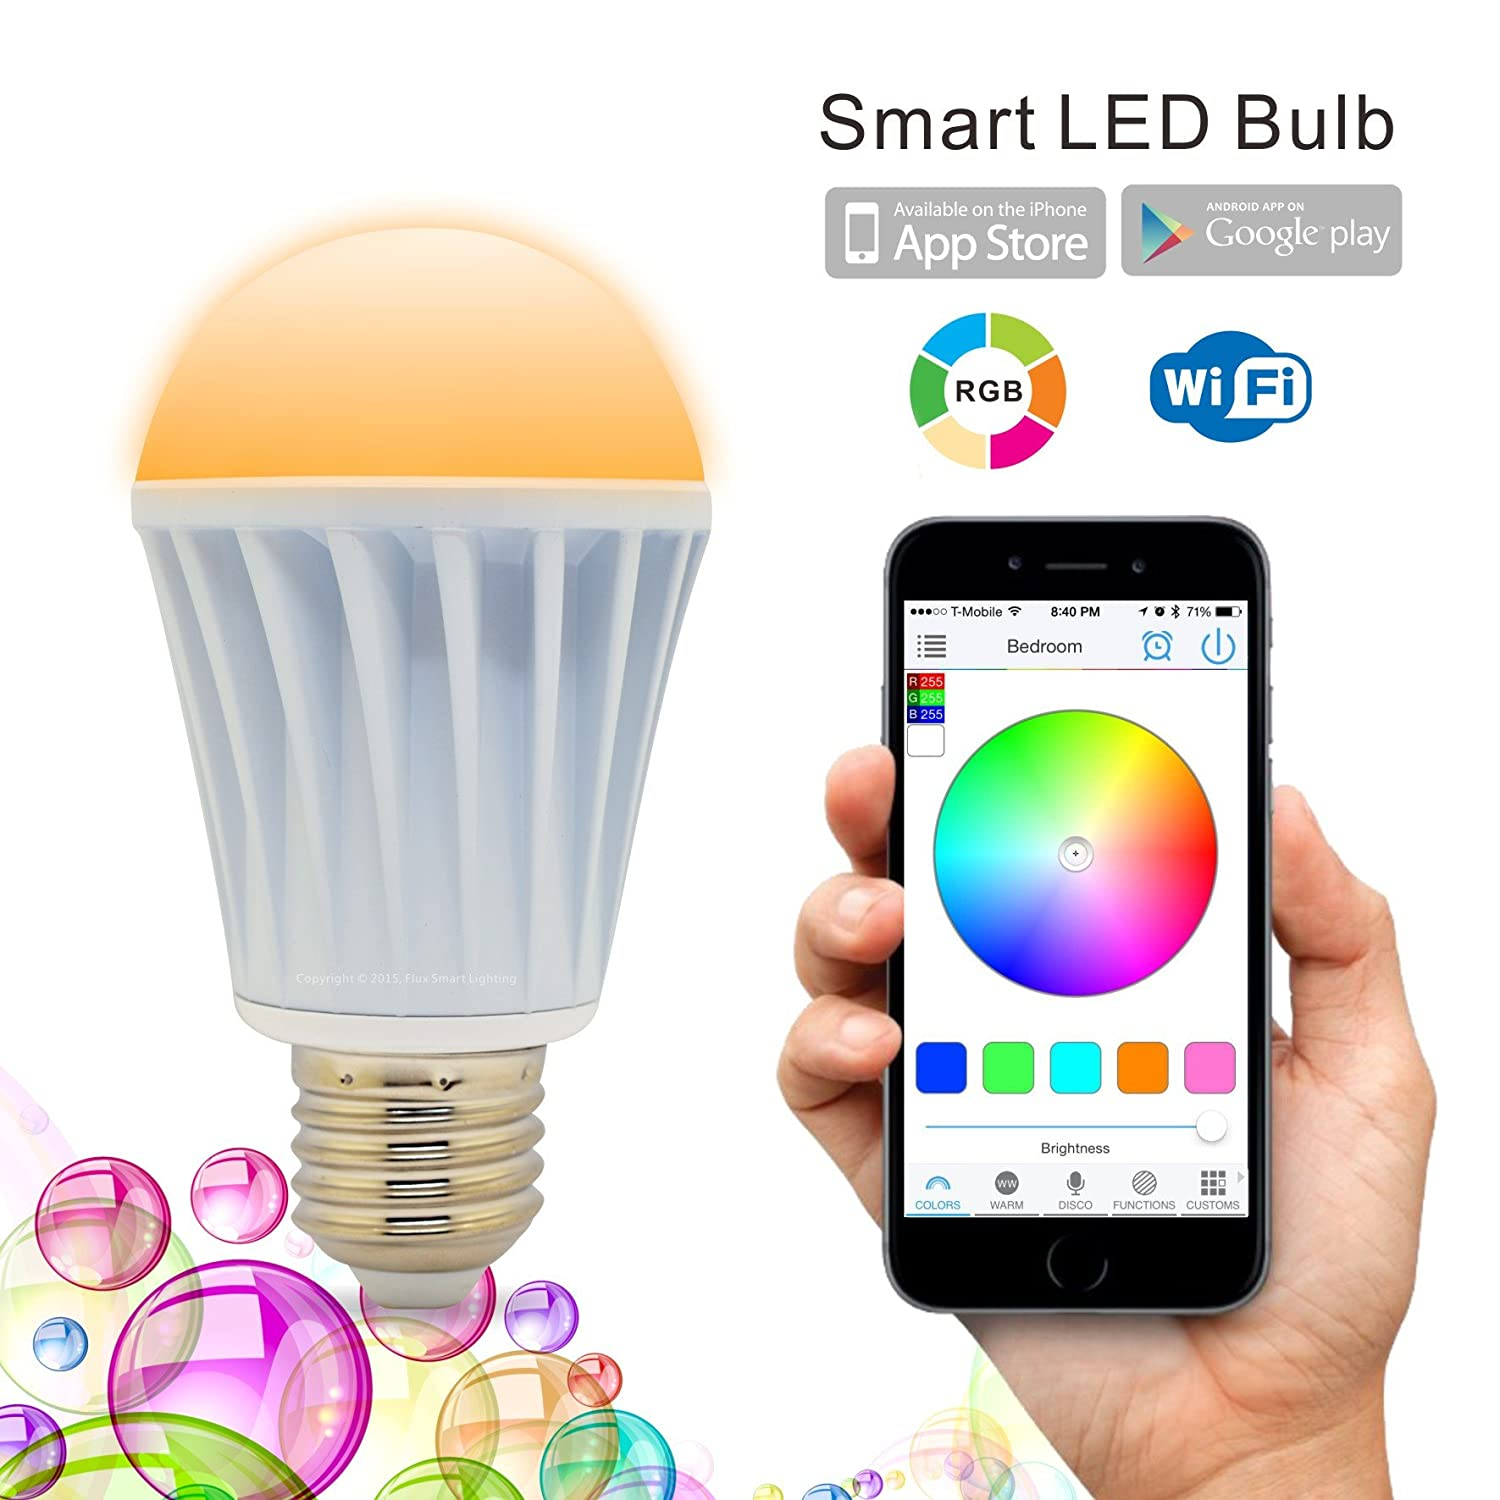 flux wifi smart led light bulb works with alexa smartphone